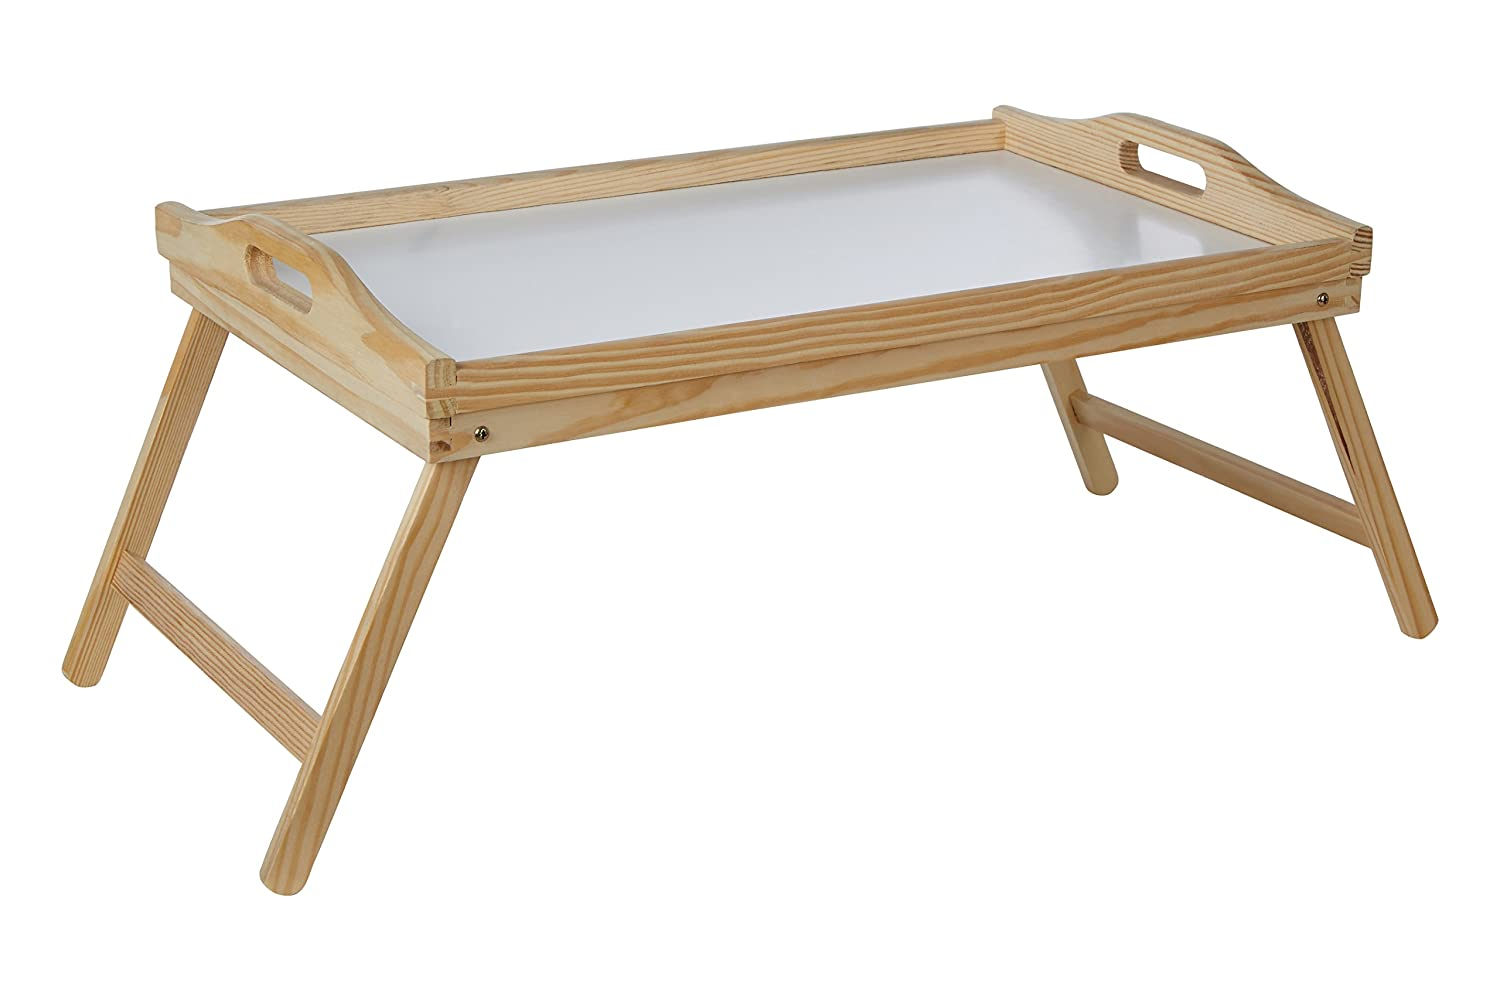 premier housewares pinewood bed tray with white top and folding legs 21 x 50 x 31 cm